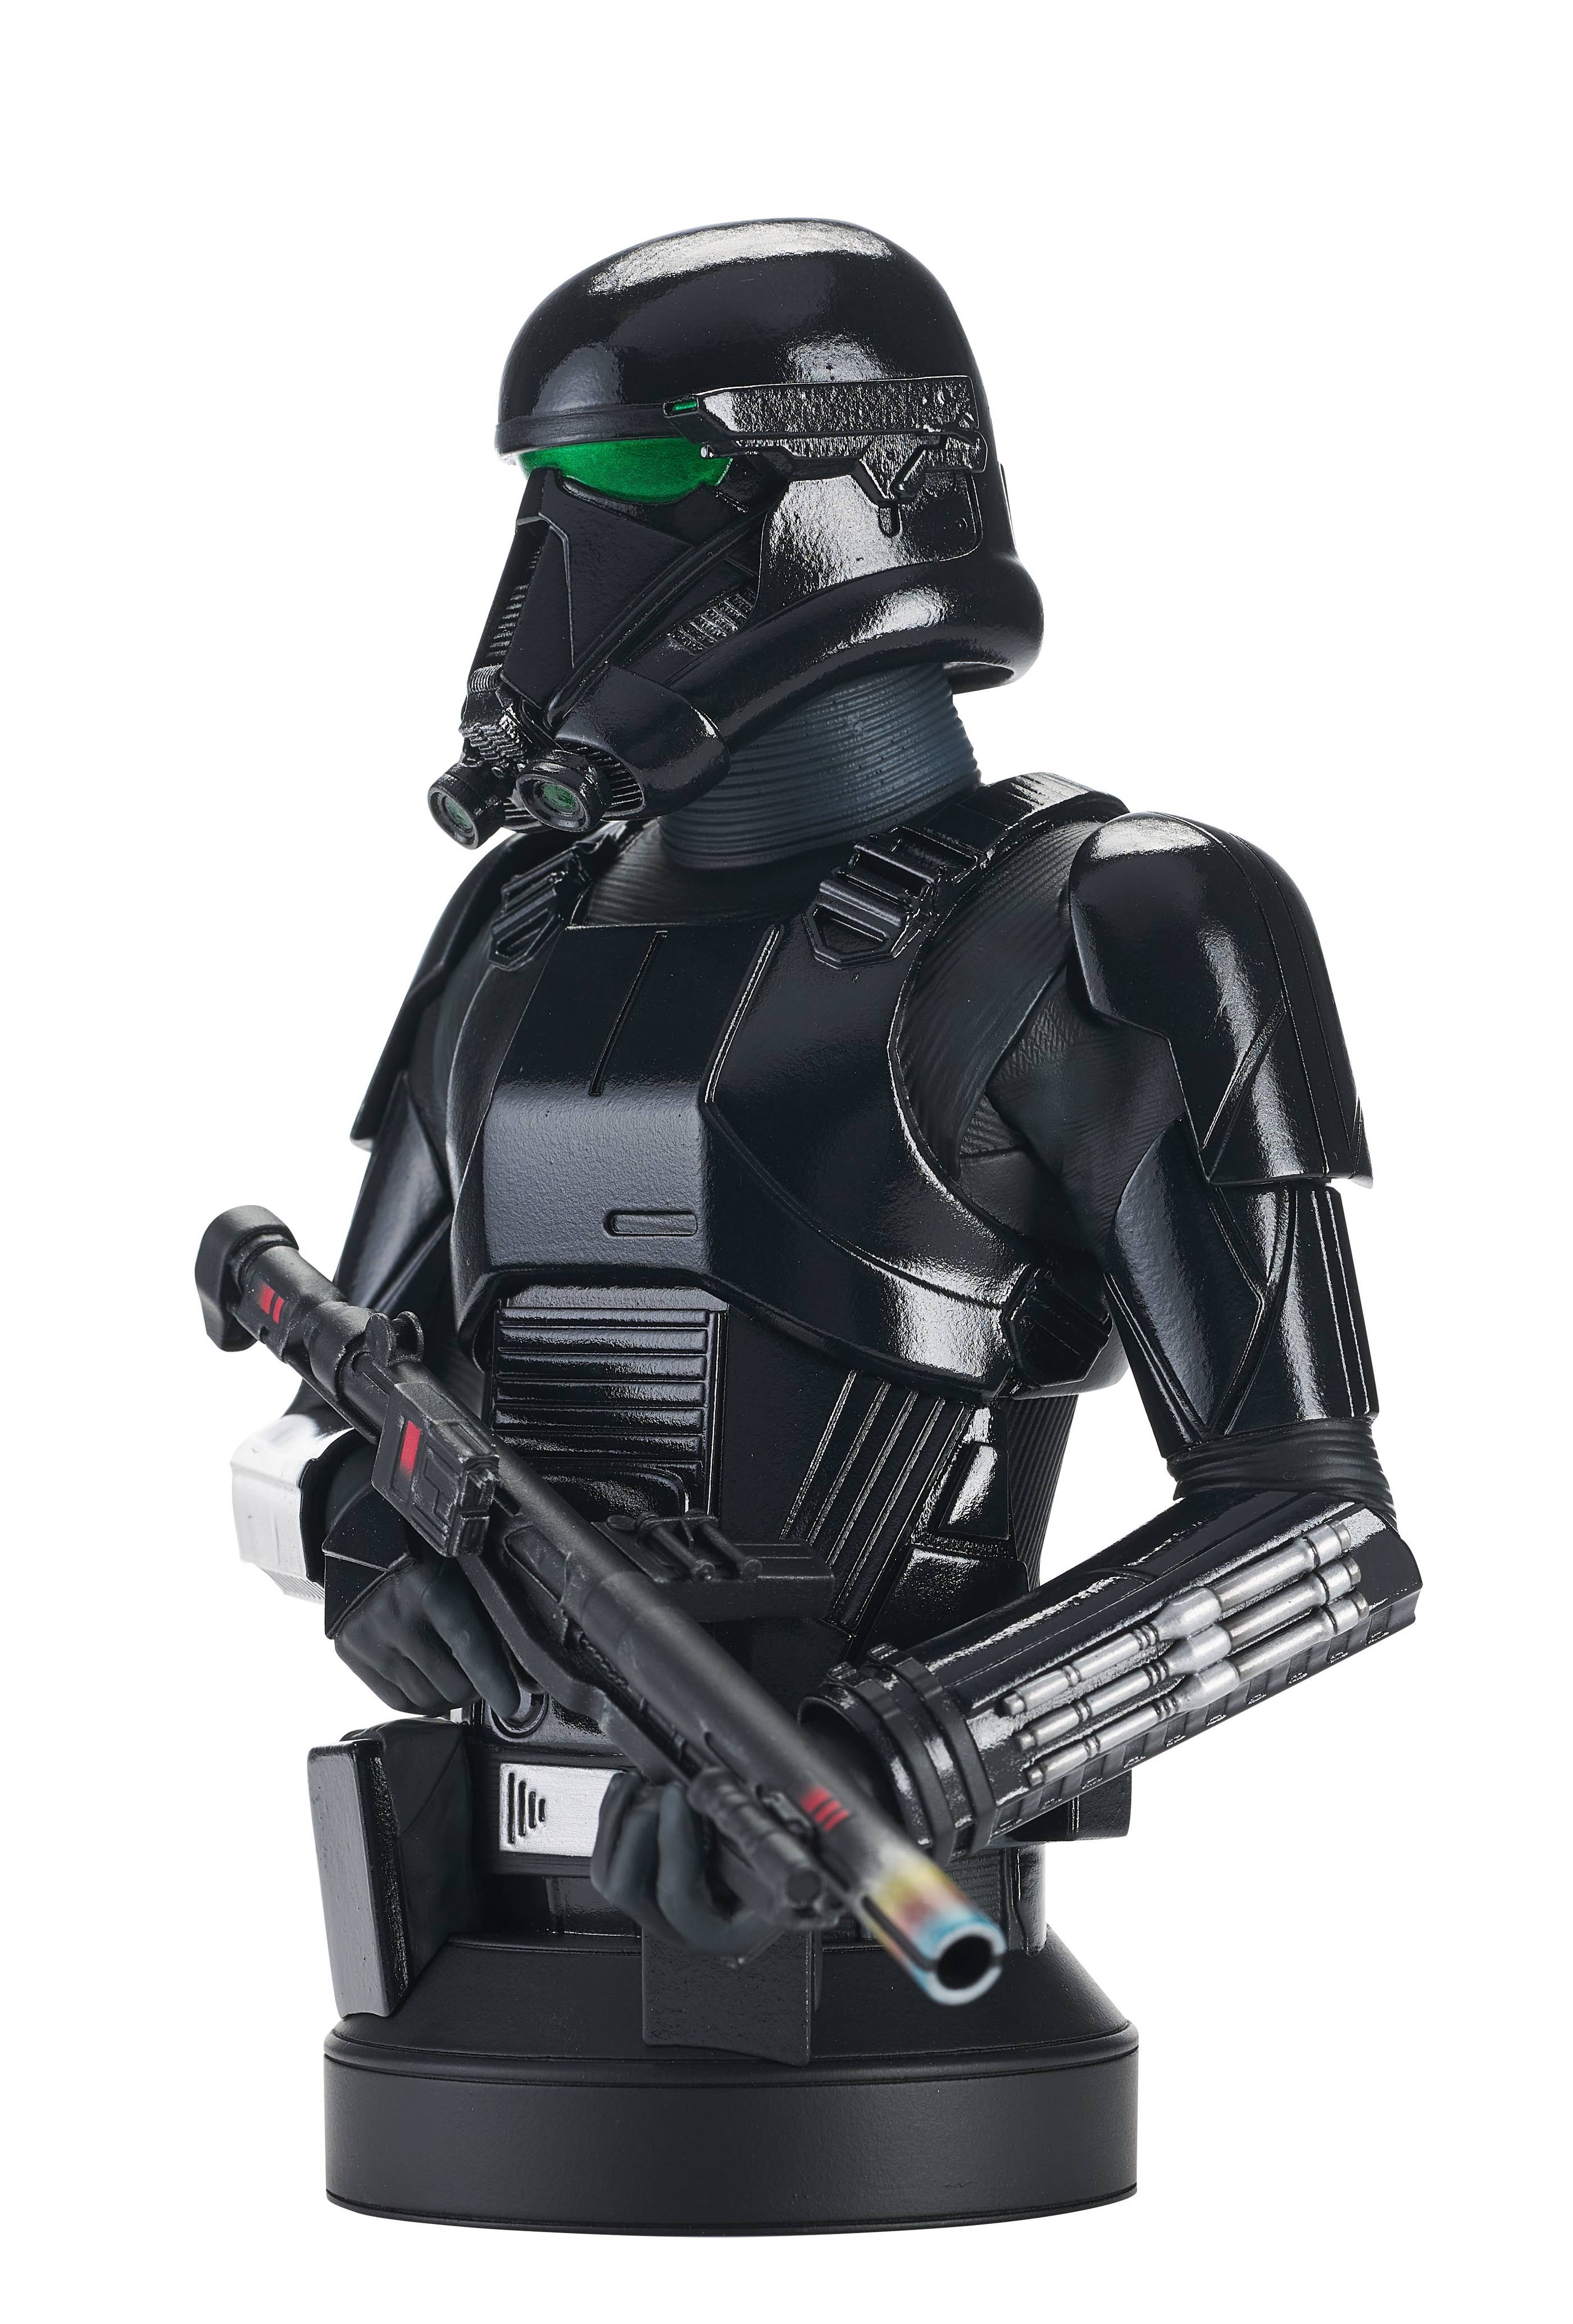 STAR WARS MANDALORIAN DEATH TROOPER 1/6 SCALE BUST